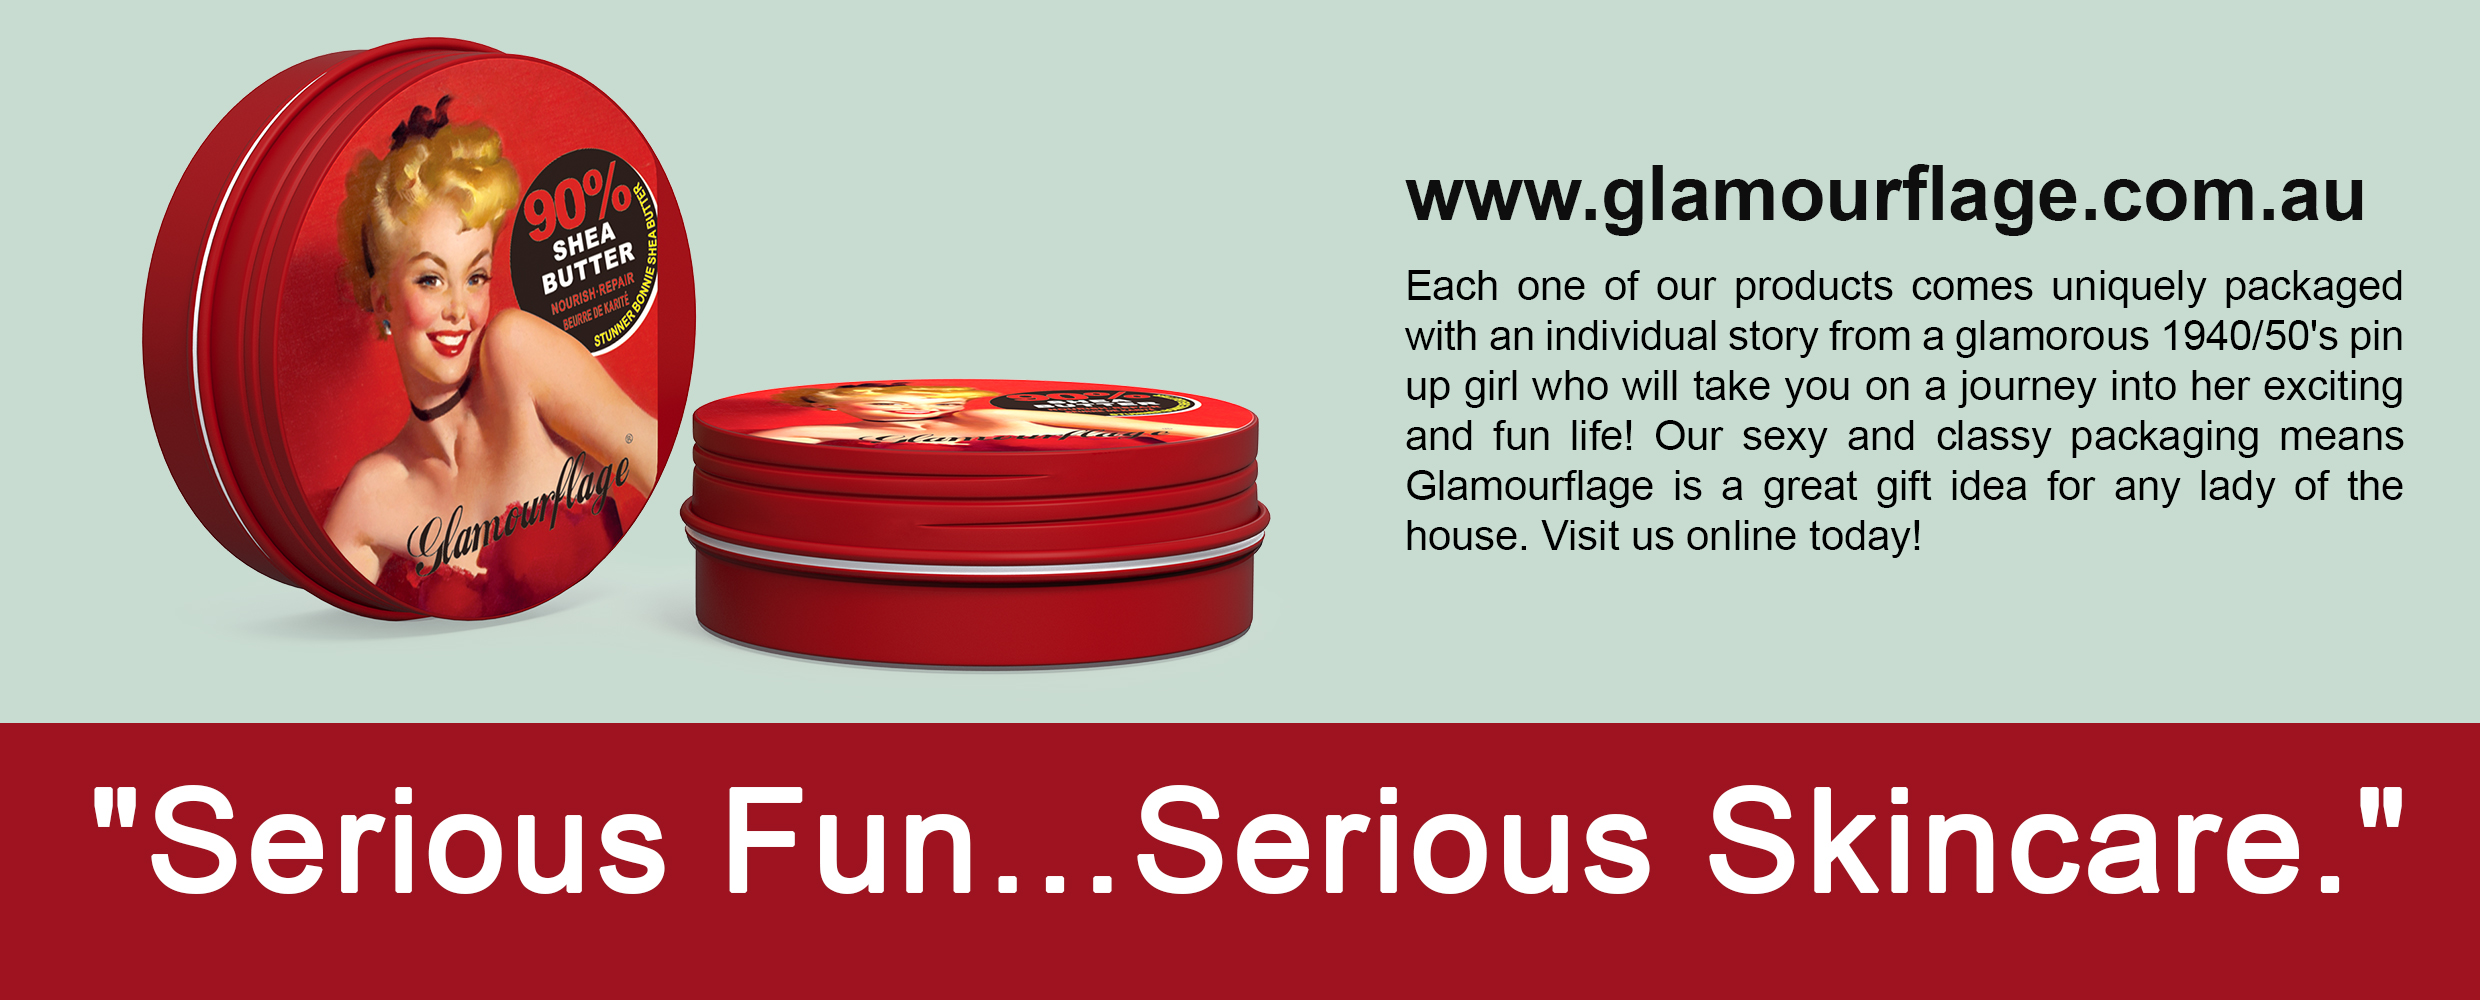 Glamourflage Skincare. SKINCARE. NOT TESTED ON ANIMALS. VEGAN.